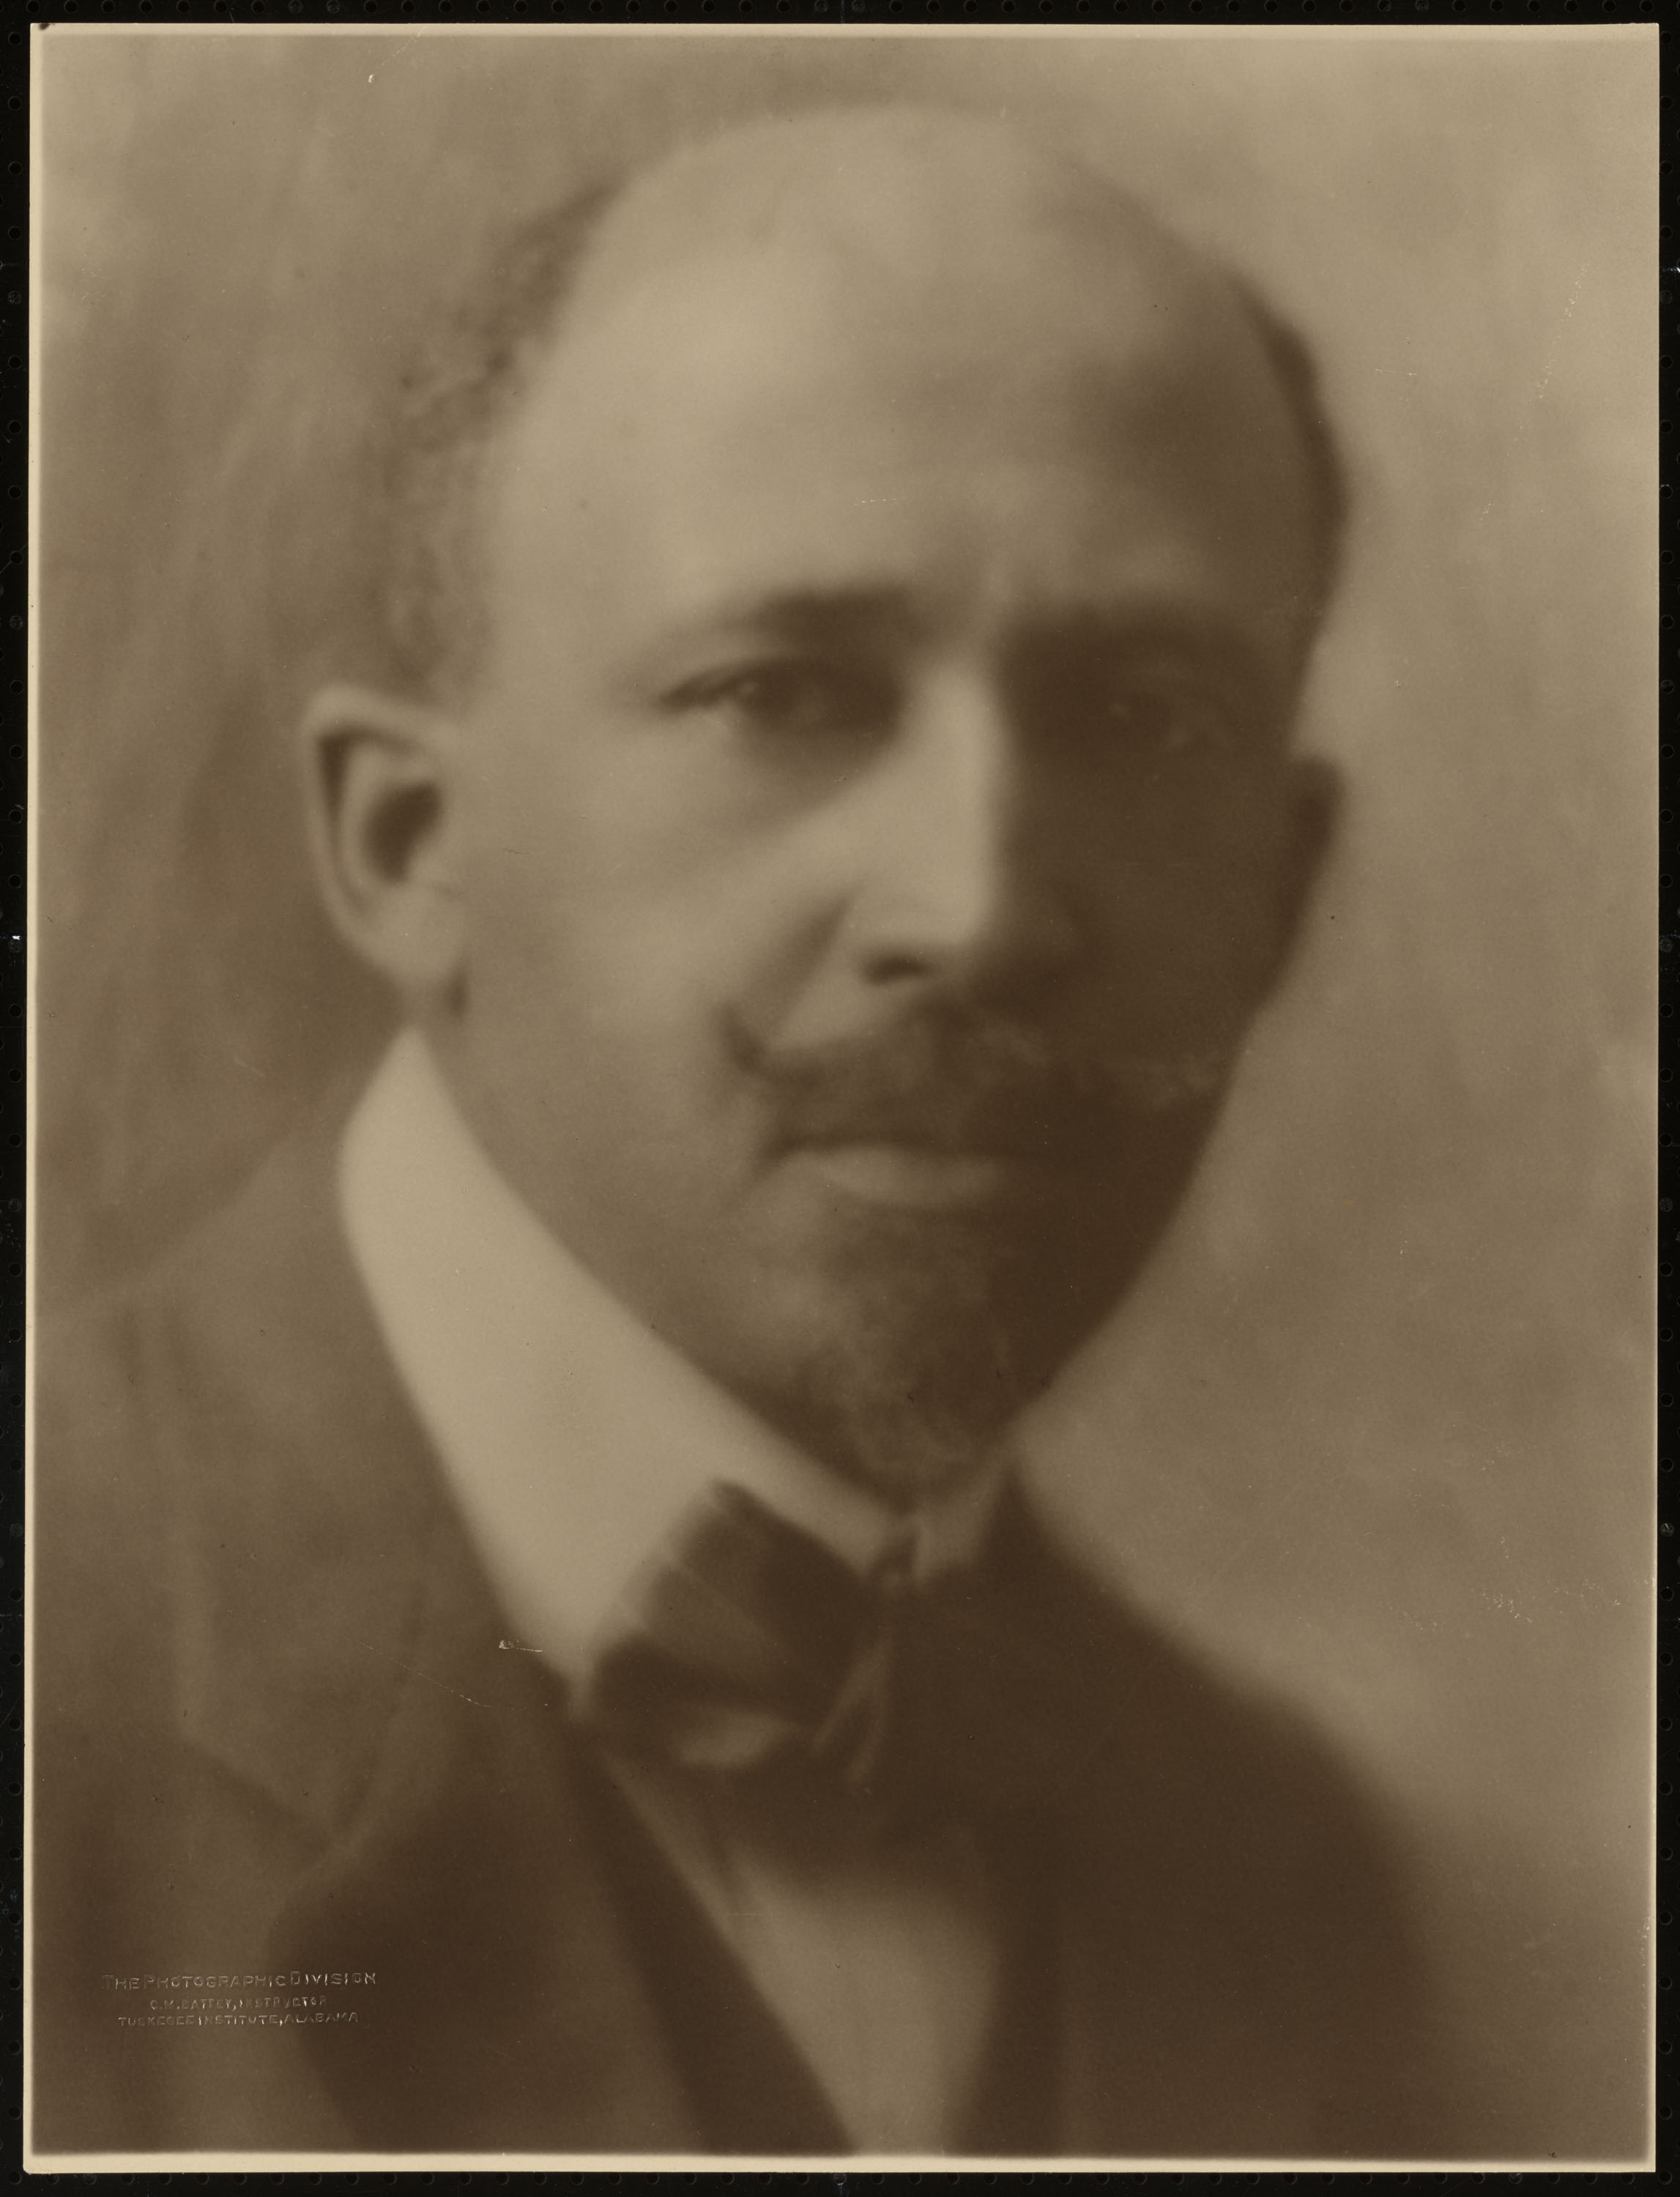 W.E.B. Du Bois portrait by                               Cornelius M. Battey. 1918. Battey worked as the head of the photography division at the Tuskegee Institute of Alabama.